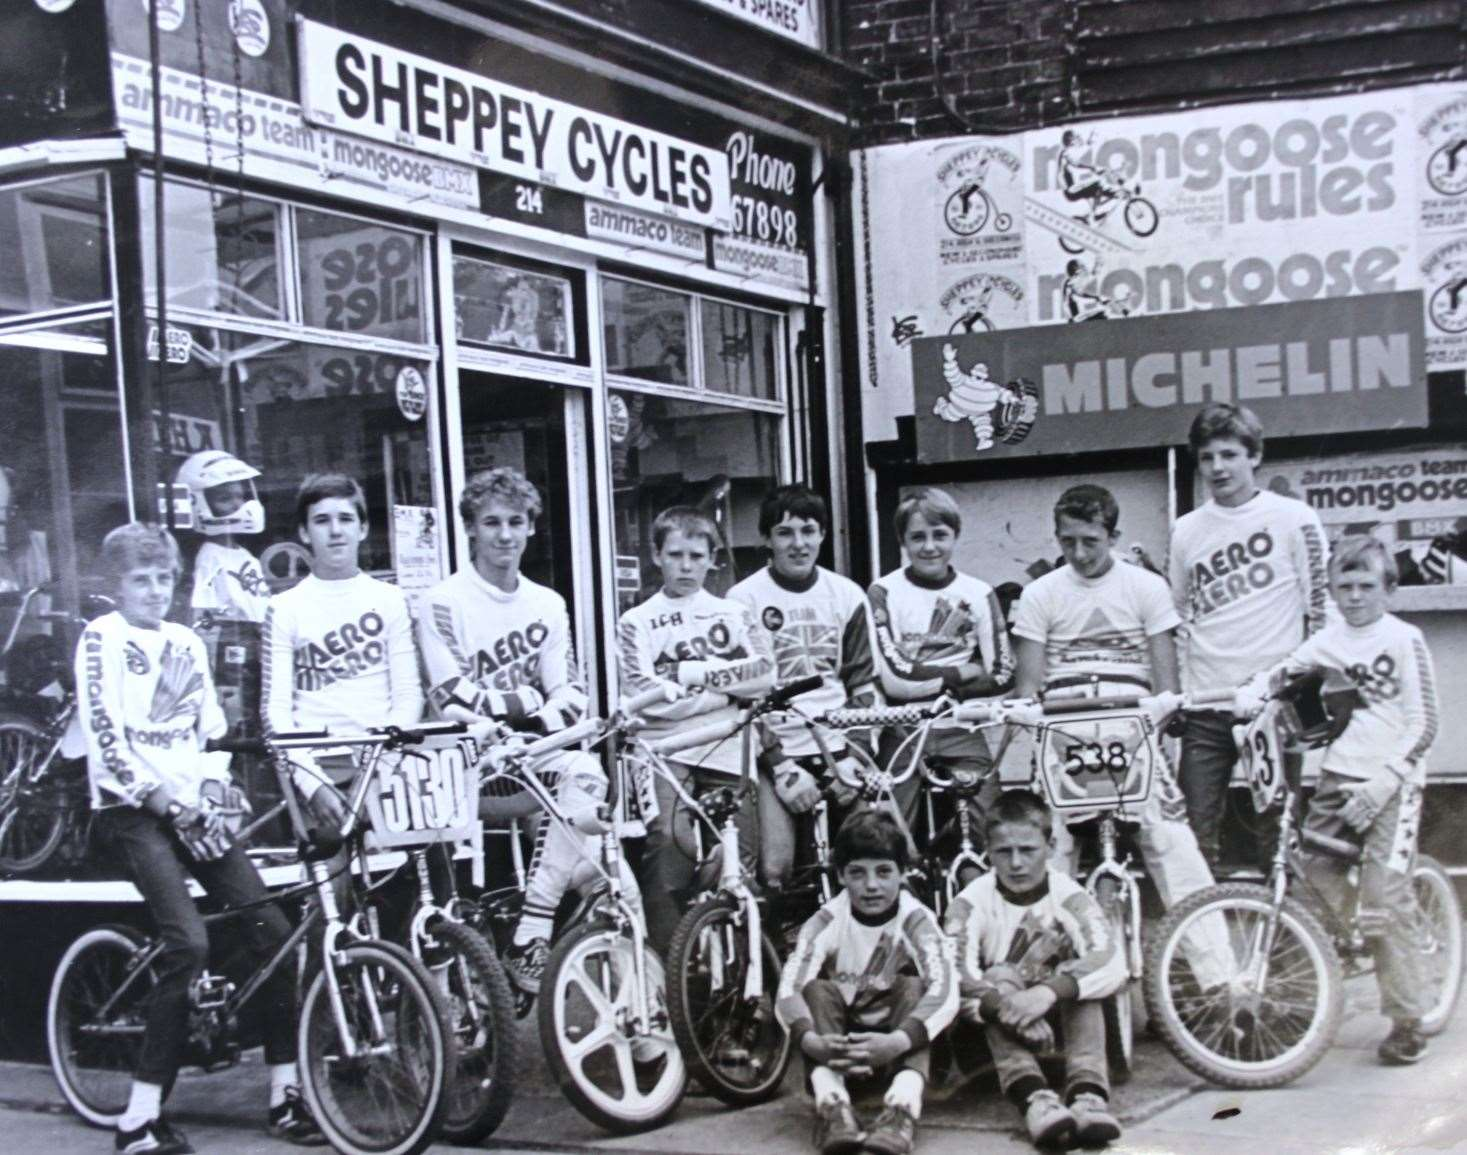 Sheppey Cycles' heyday in the 1980s when it had its own BMX team